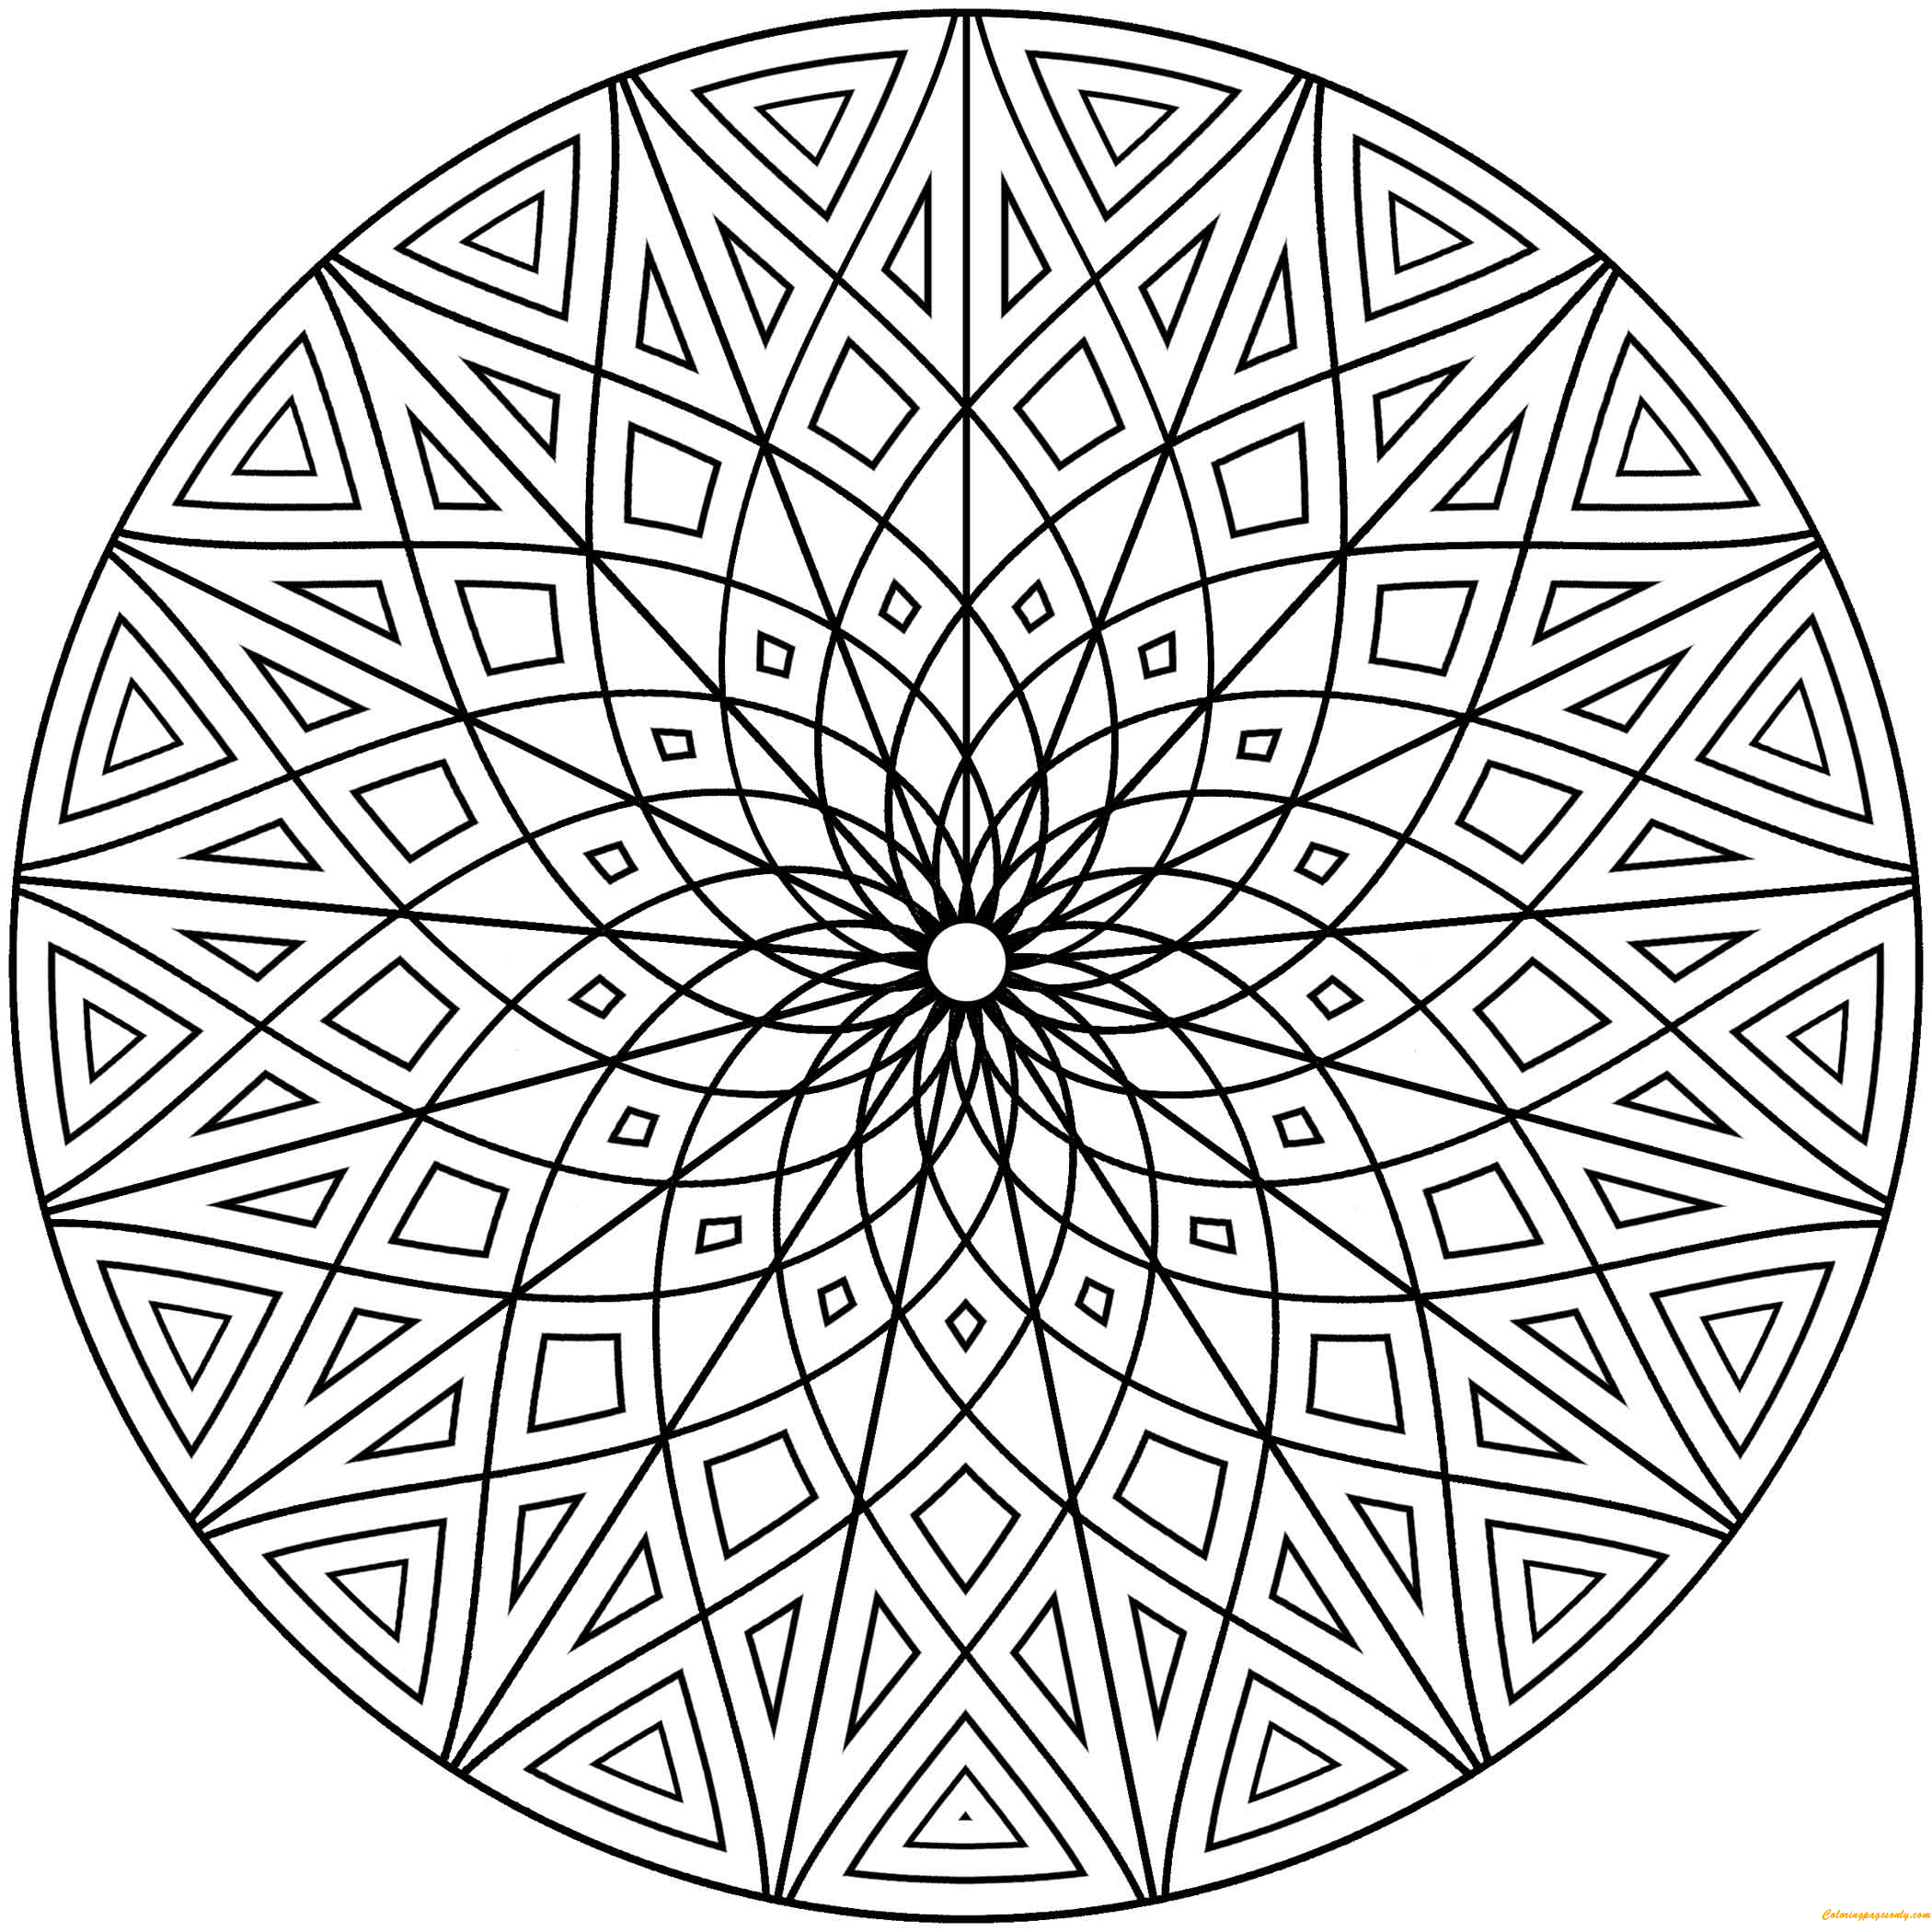 printable designs to color hard geometric designs coloring page free coloring pages color printable to designs